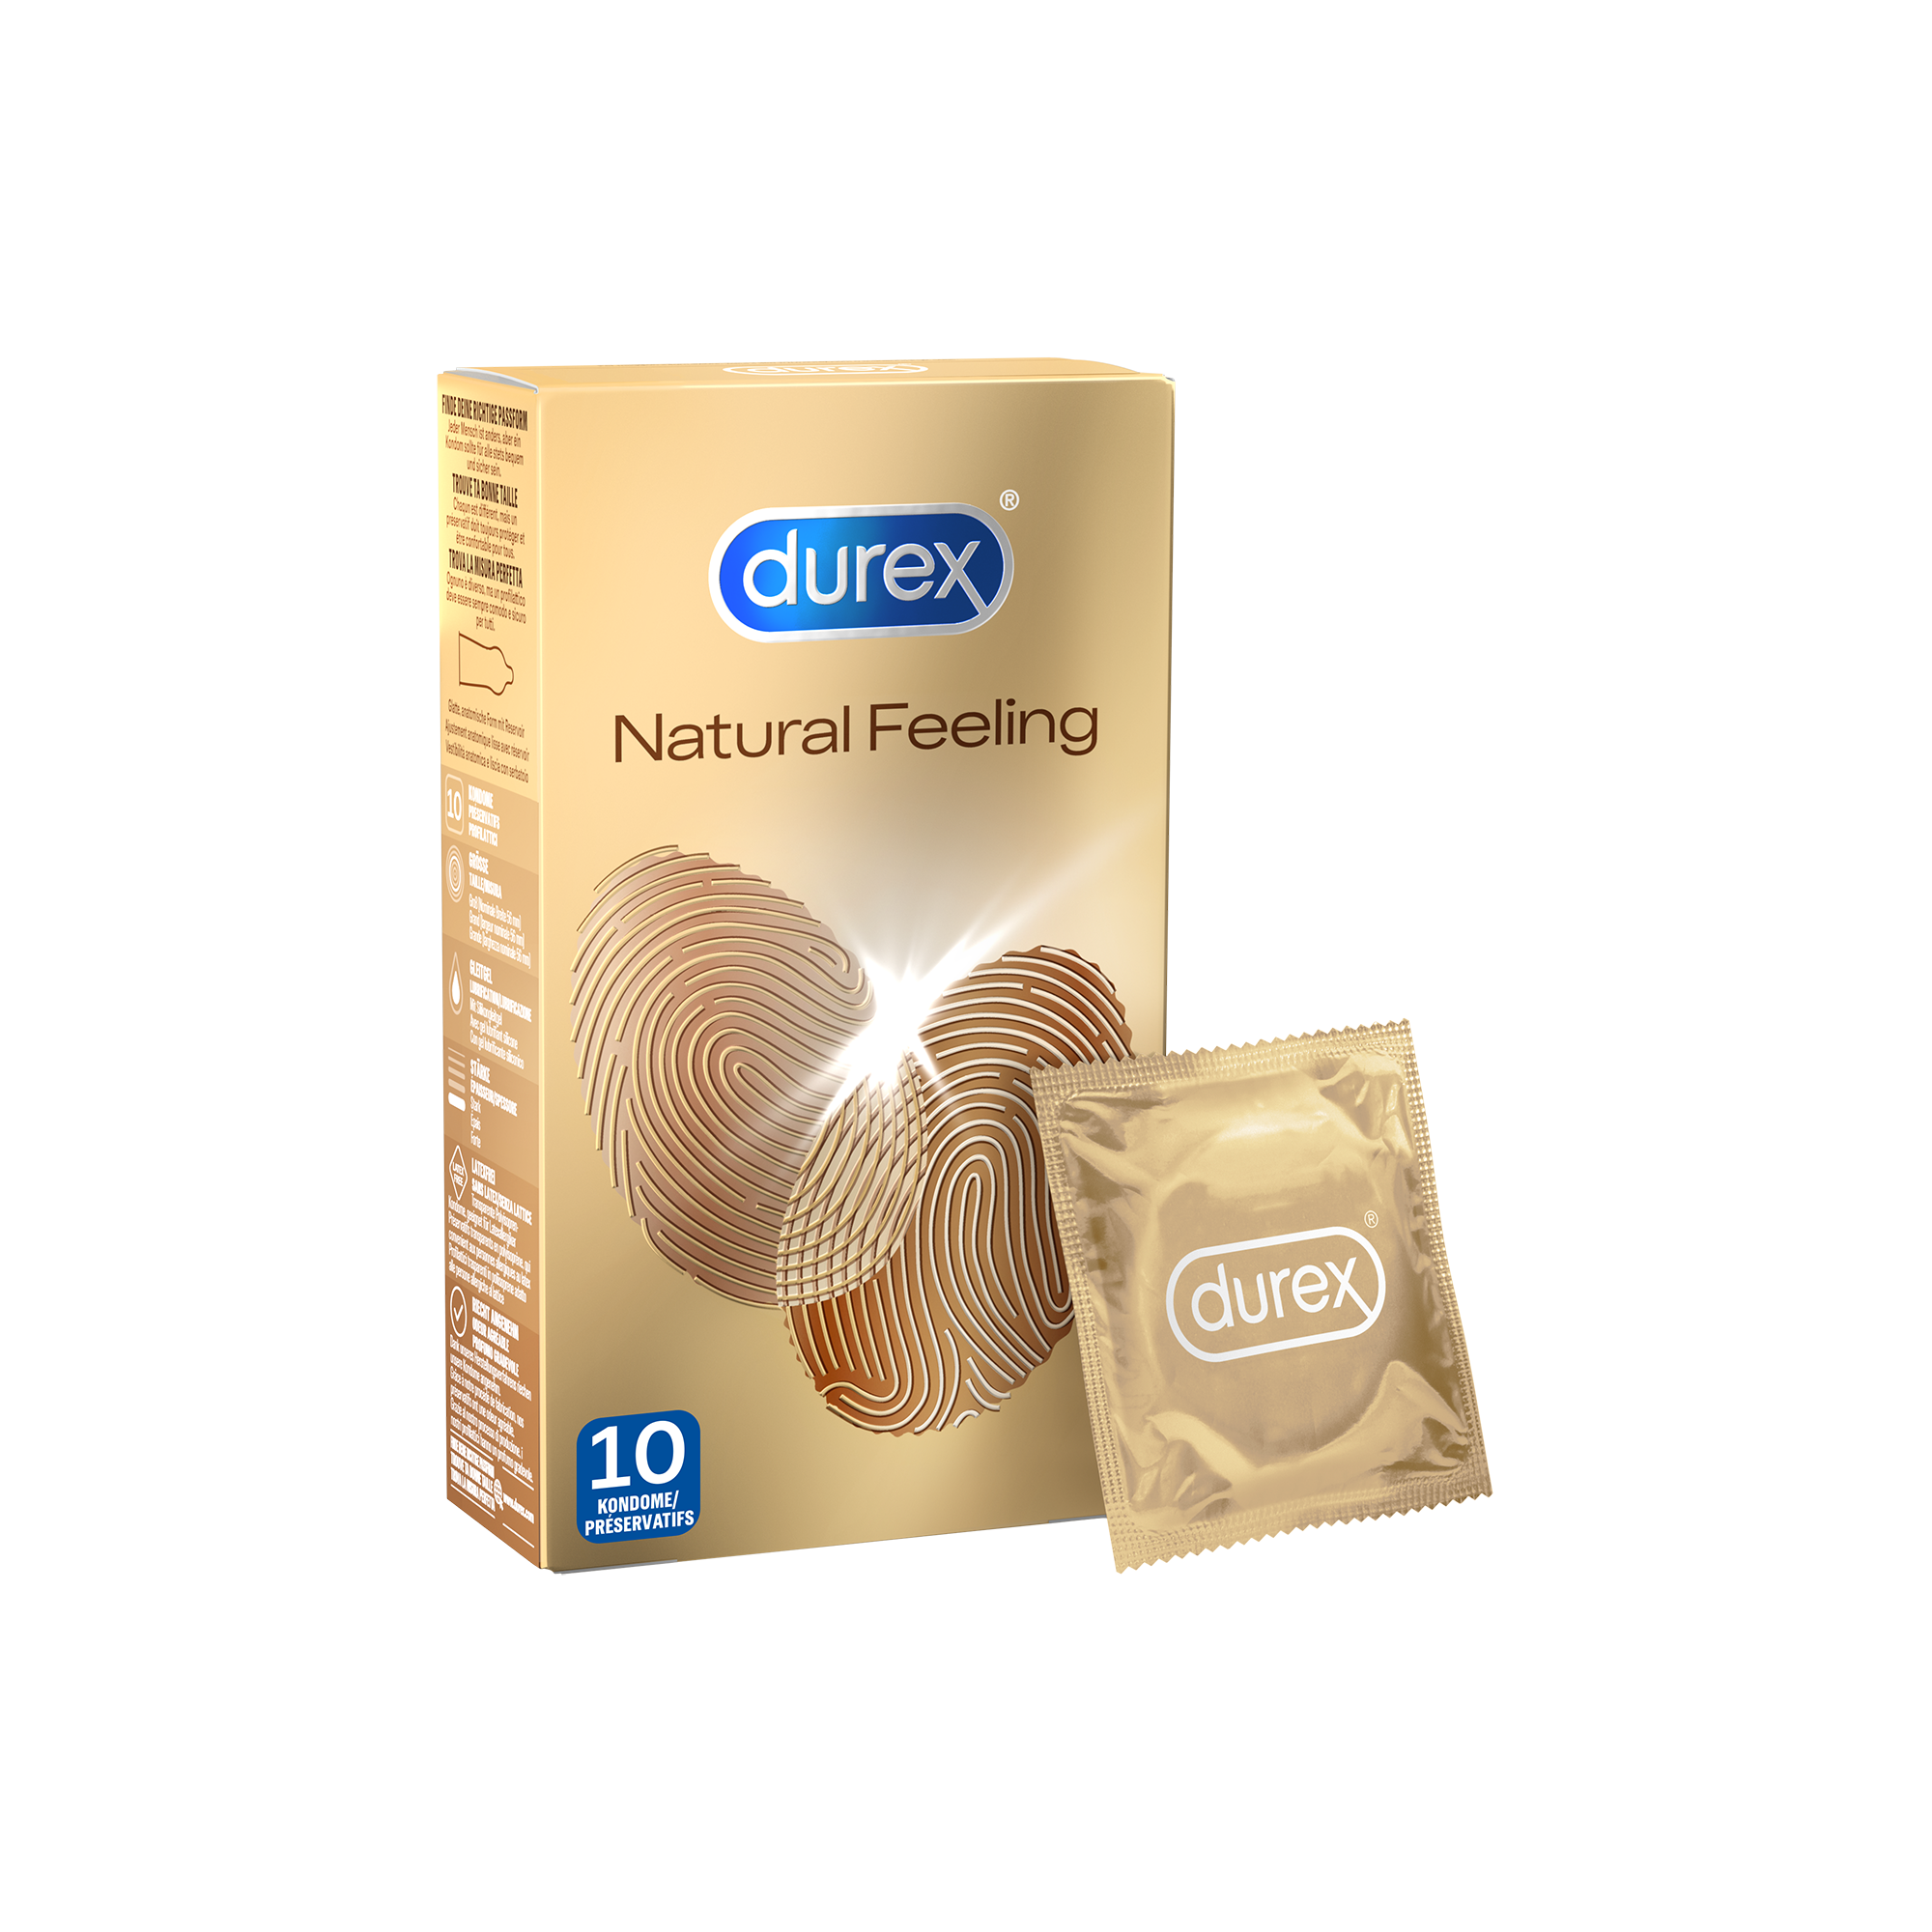 Durex DE - Natural Feeling 10 Kondomes